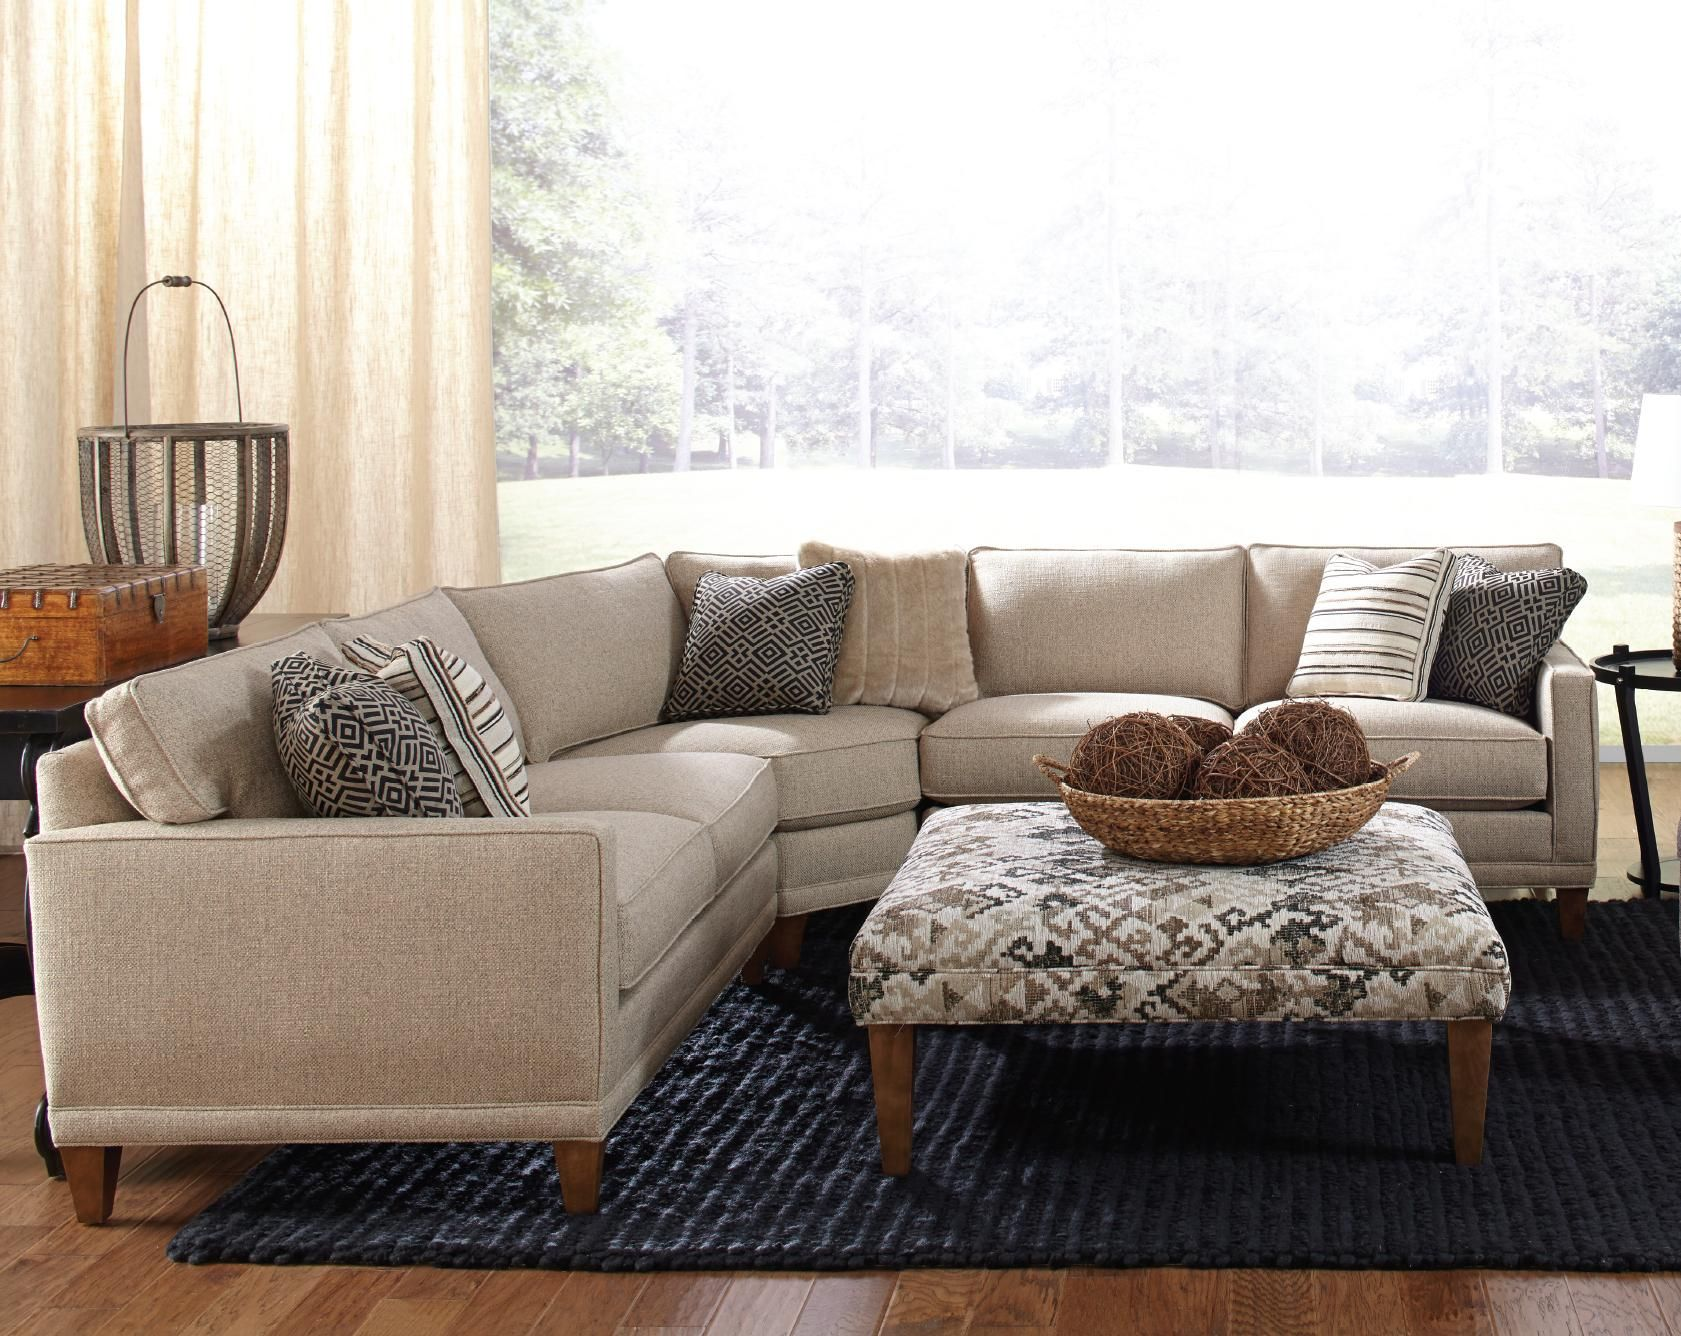 Rowe Townsend Contemporary 3 Piece Sectional Sofa   Sprintz Furniture    Sofa Sectional Nashville, Franklin